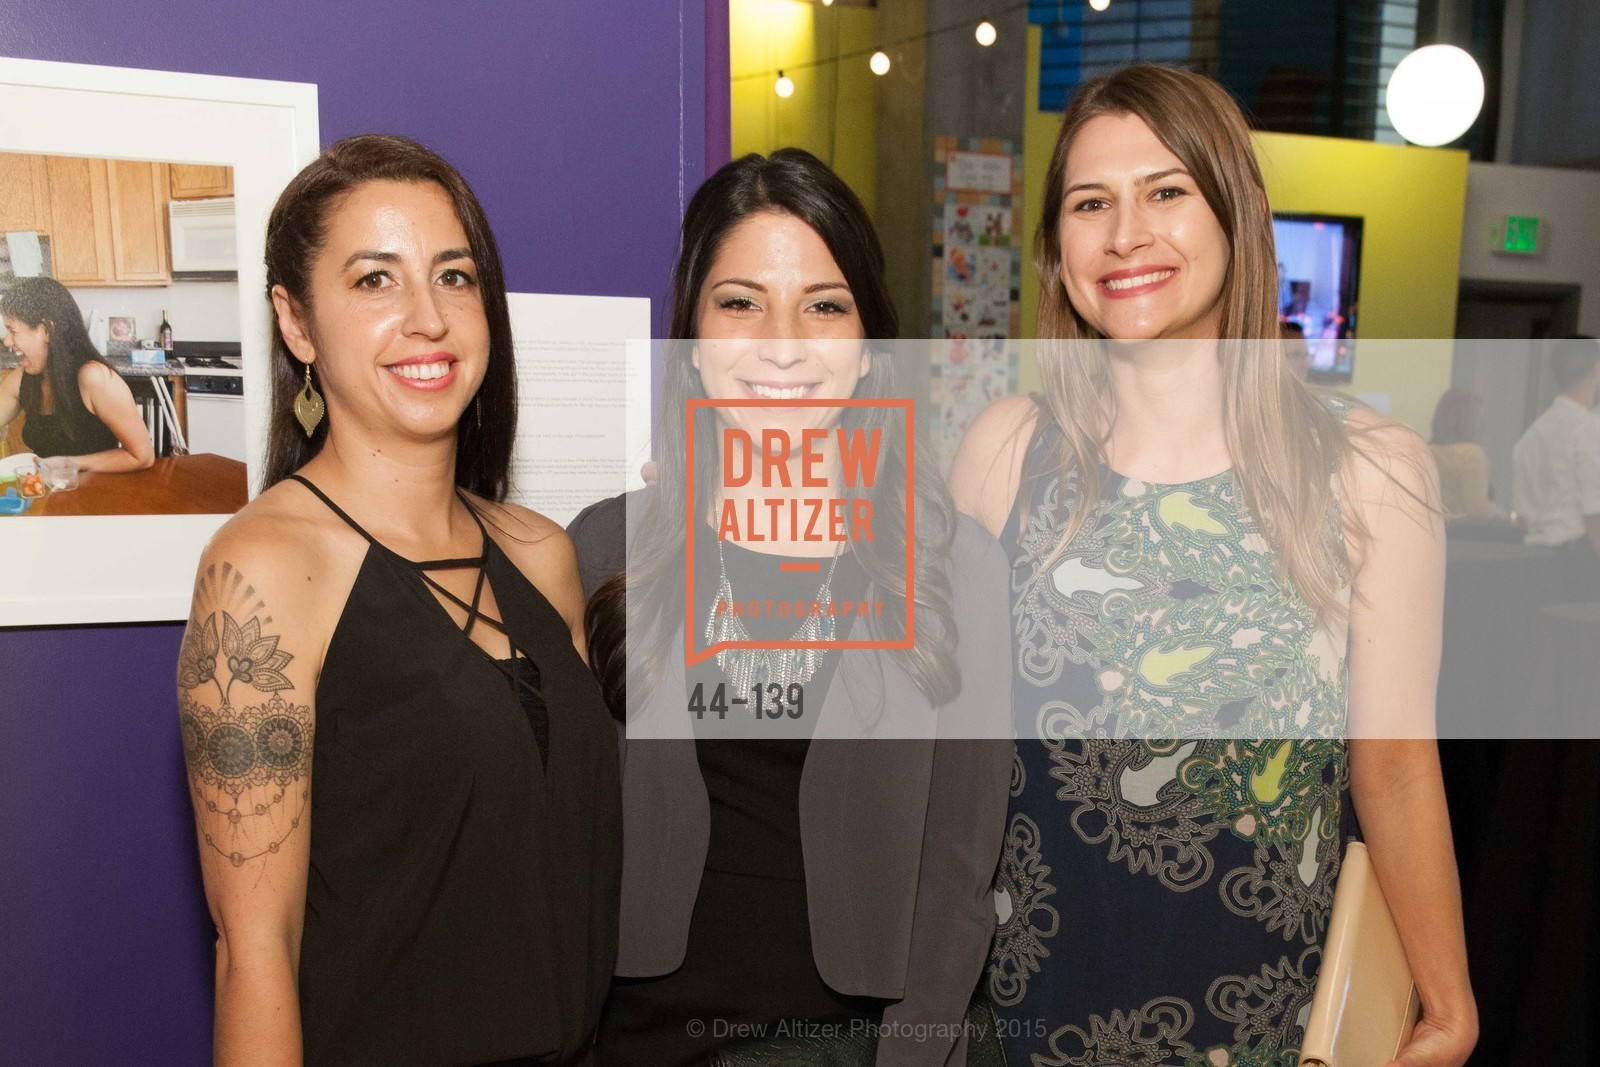 Jen Greco, Valerie Alayma, Sarah Kasabian, Homeless Prenatal Program Our House, Our Mission Gala, 2500 18th St, May 29th, 2015,Drew Altizer, Drew Altizer Photography, full-service agency, private events, San Francisco photographer, photographer california